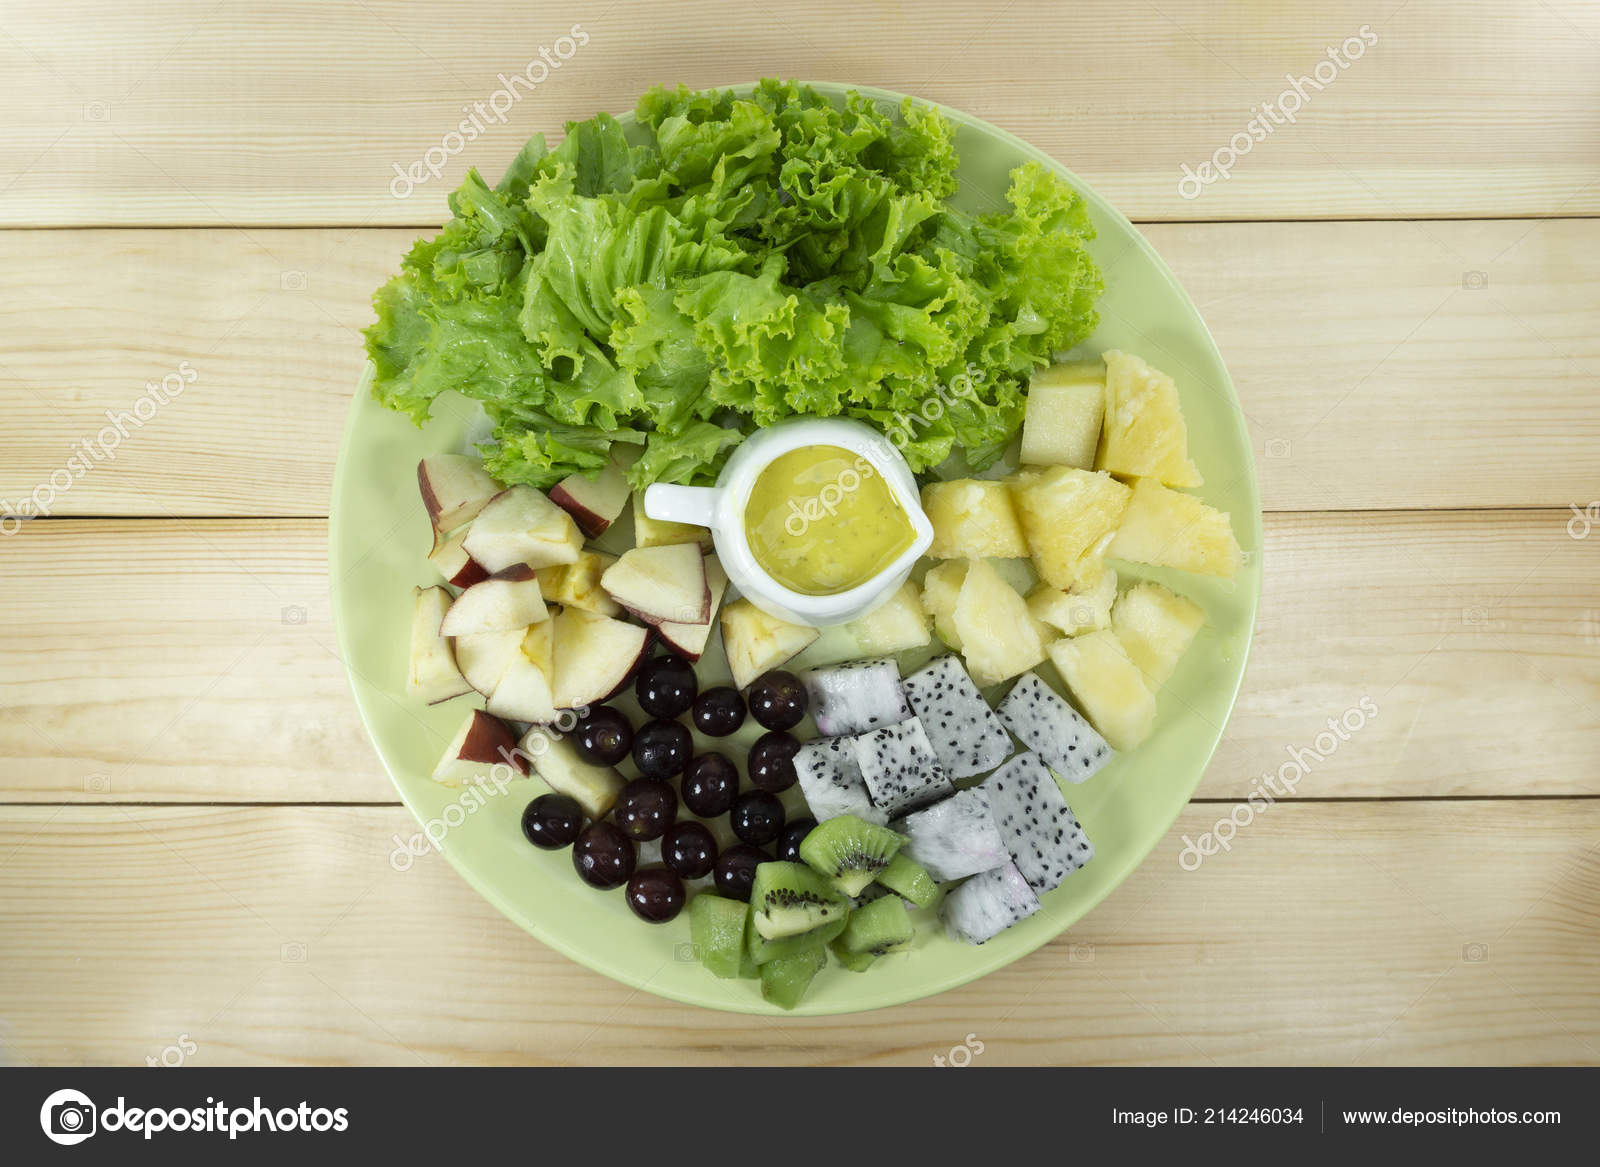 Fruit Salad Fresh Vegetables Green Plate Wooden Floor Props Decoration Stock Photo Image By C Artstore Outlook Co Th 214246034